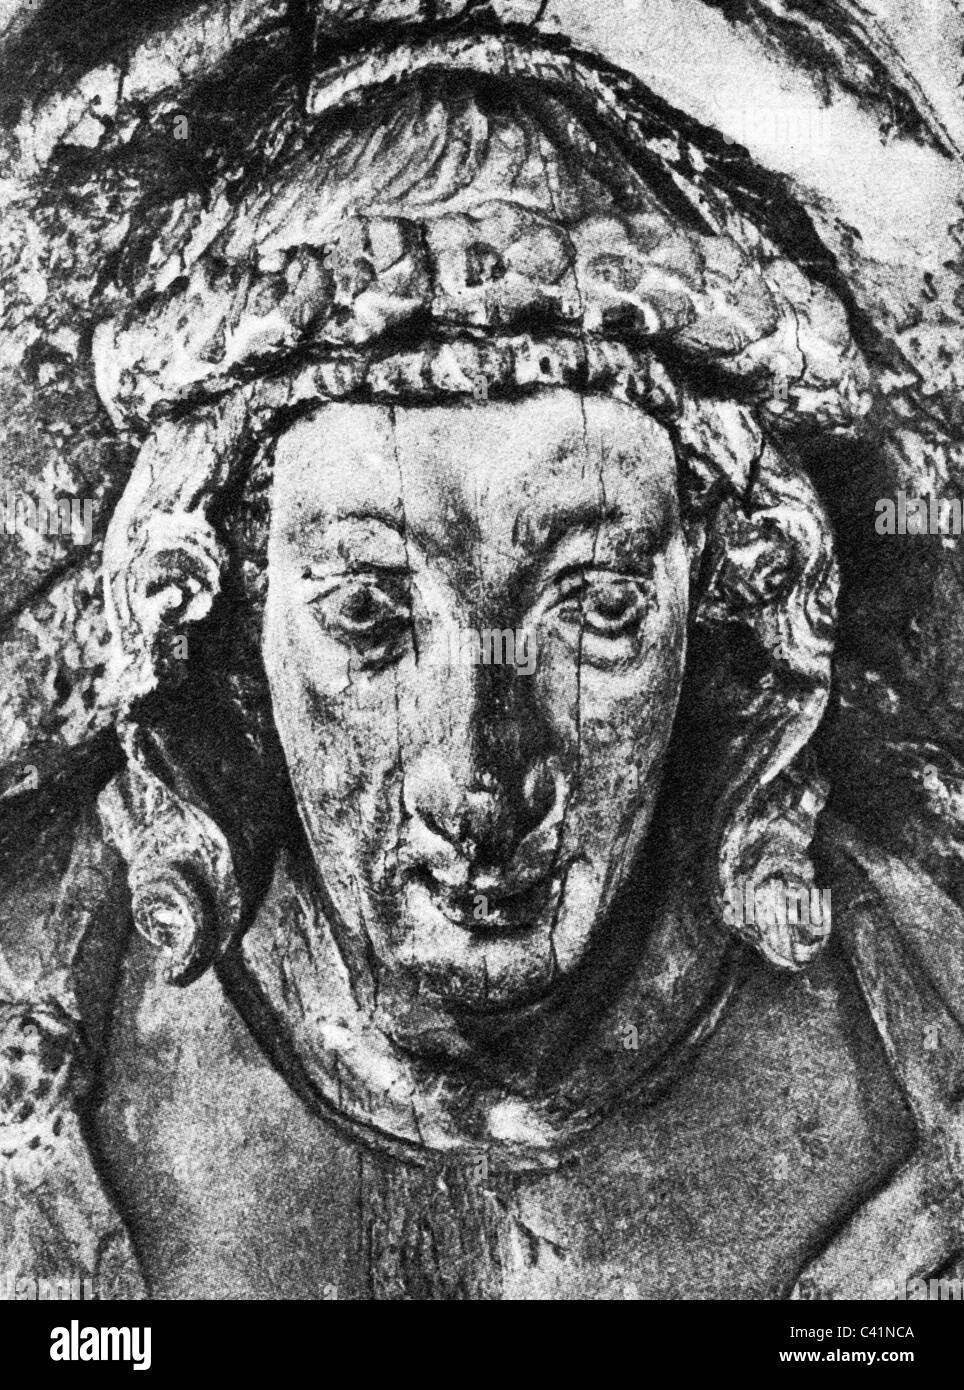 Sayn, Heinrich III 'the Great', Count of, circa 1193 - 1.1.1247, portrait, wood carving at his grave, Premonstratensian - Stock Image